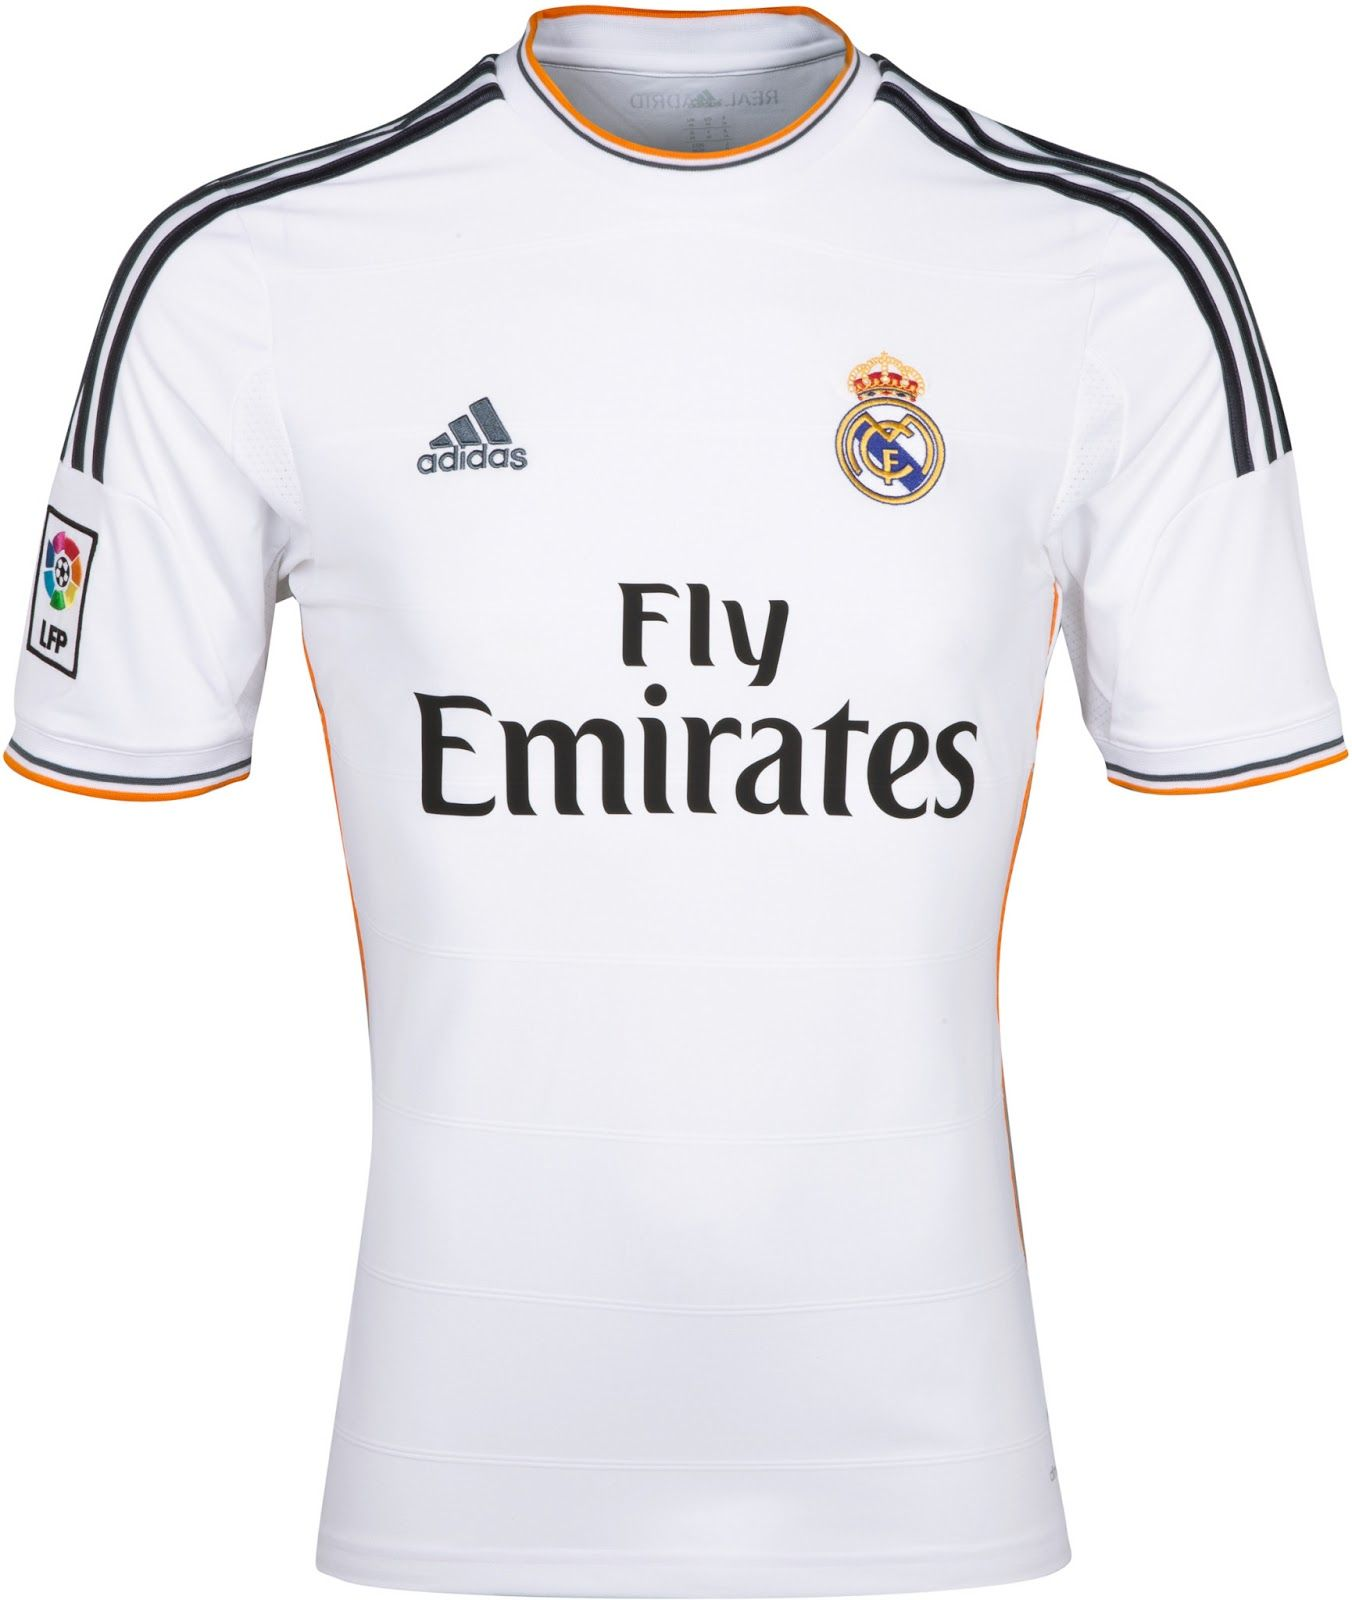 51ab2783b86d4 Camiseta Real Madrid